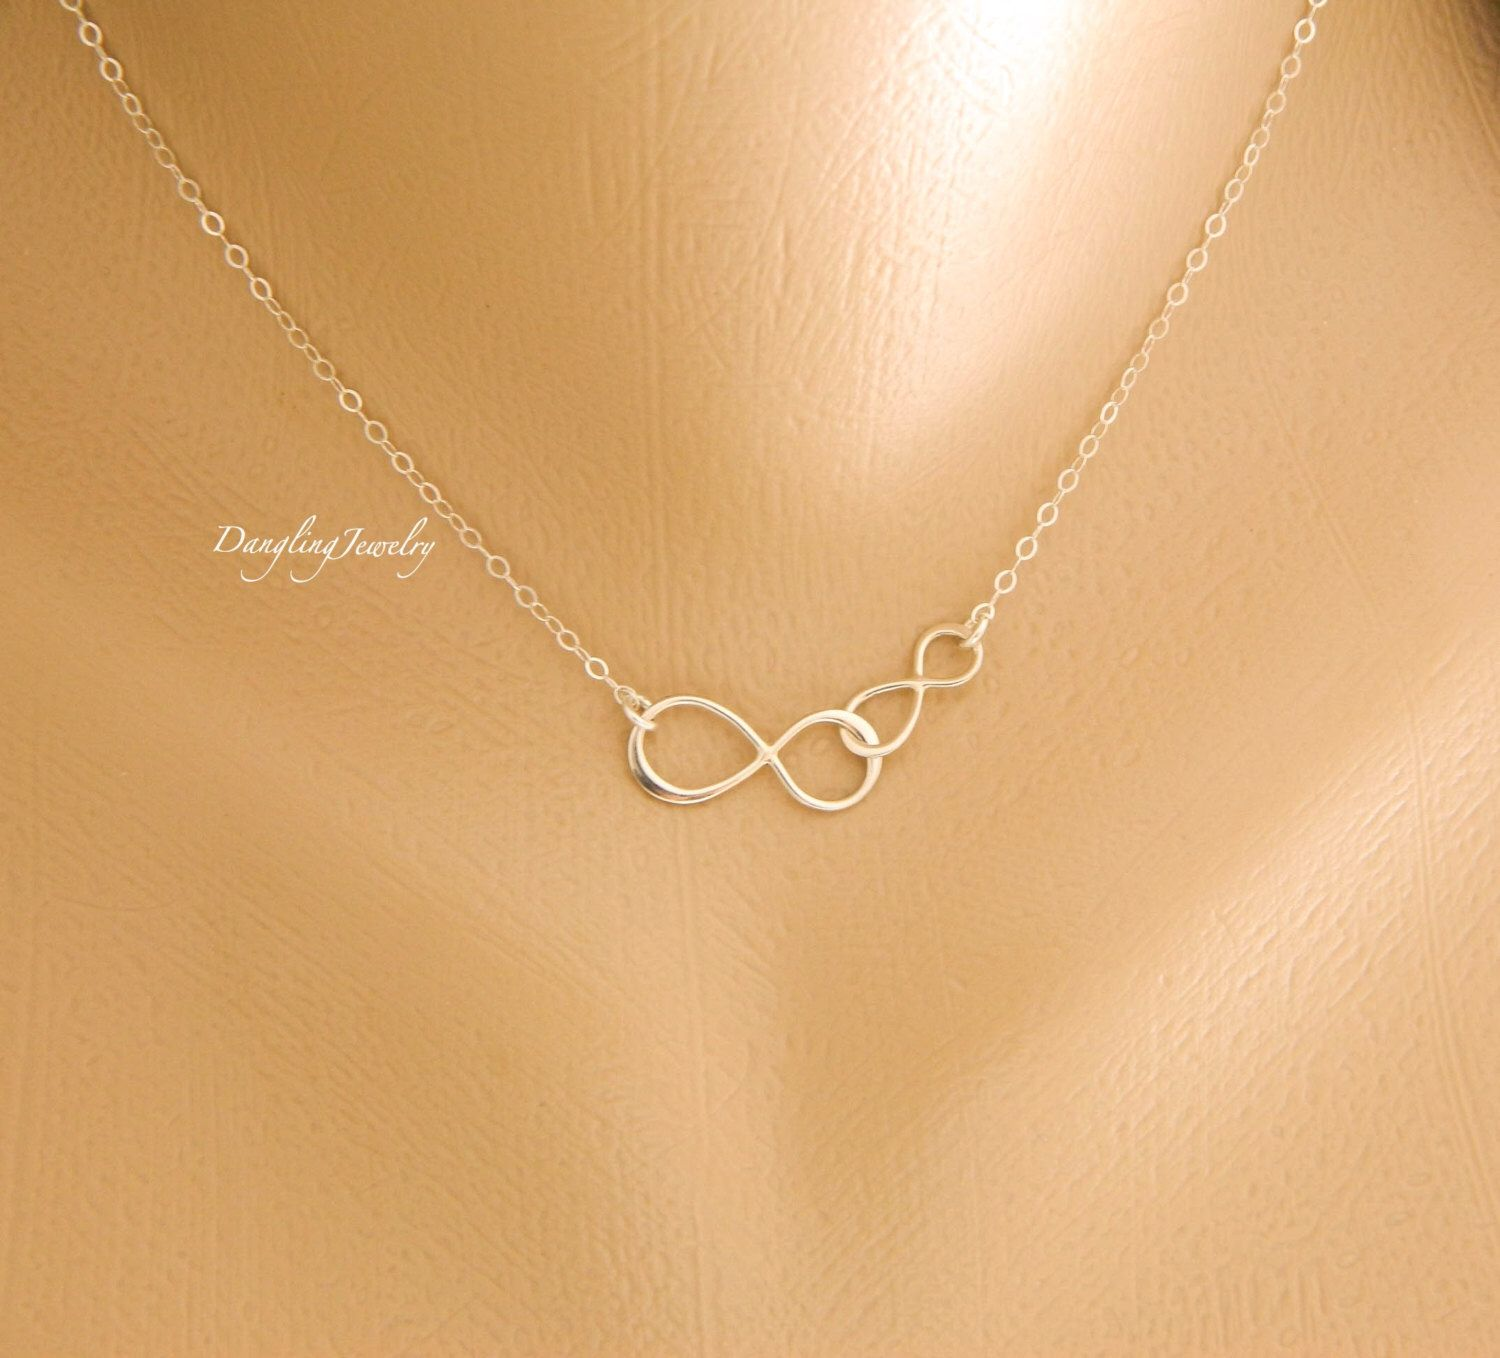 white silver charm sterling symbolic bracelet mother daughter pin gift tiny infinity bracelets friendship necklace